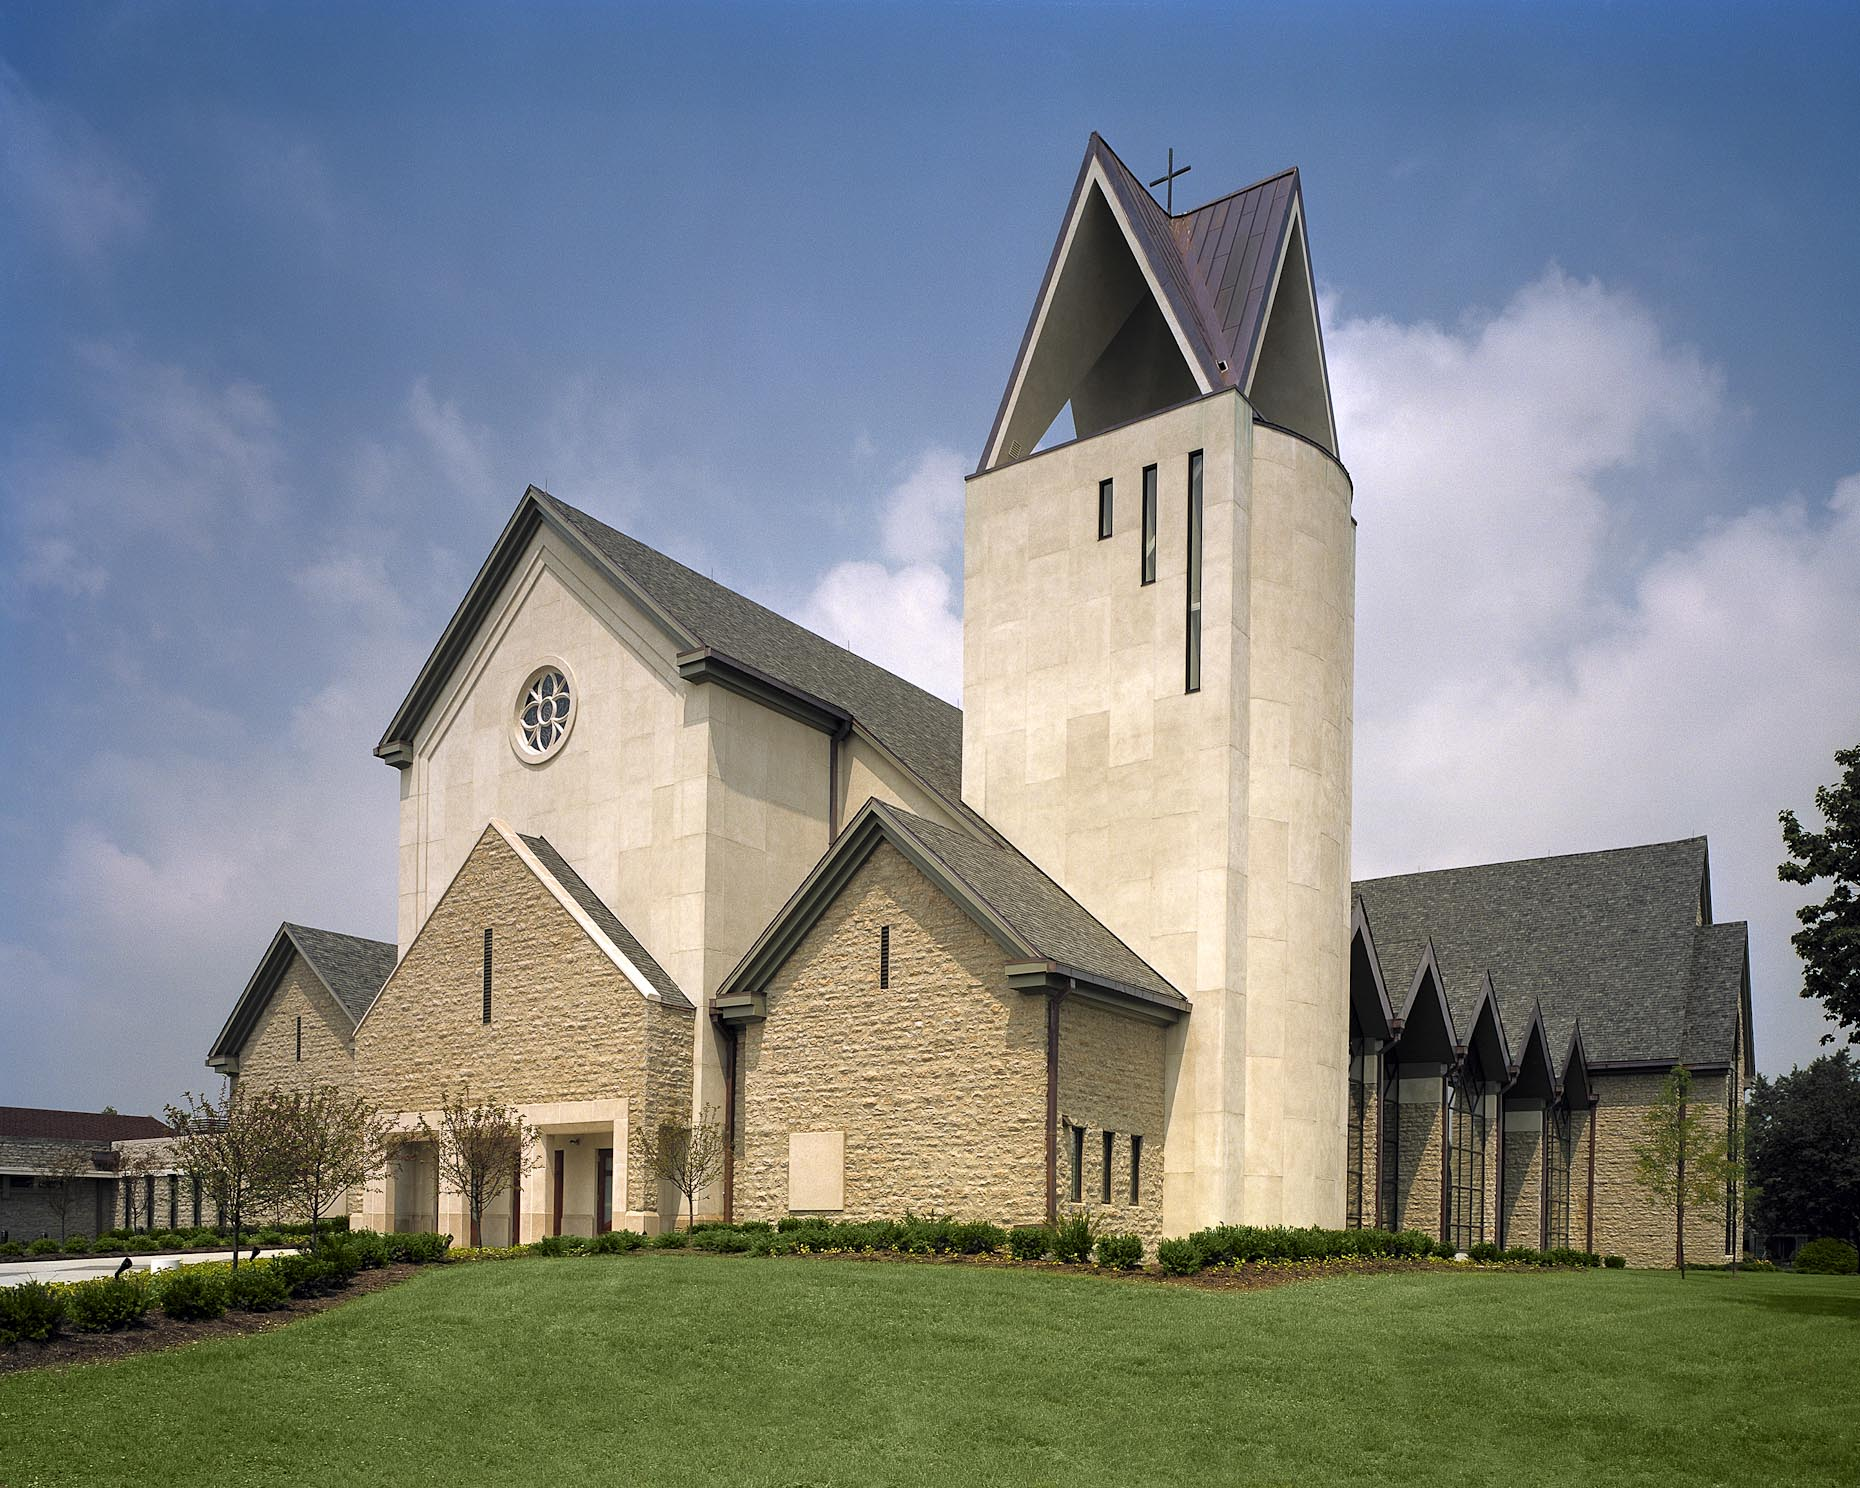 St. Andrews Church by Feinknopf Macioce Schappa Architects Photographed by Brad Feinknopf based in Columbus, Ohio